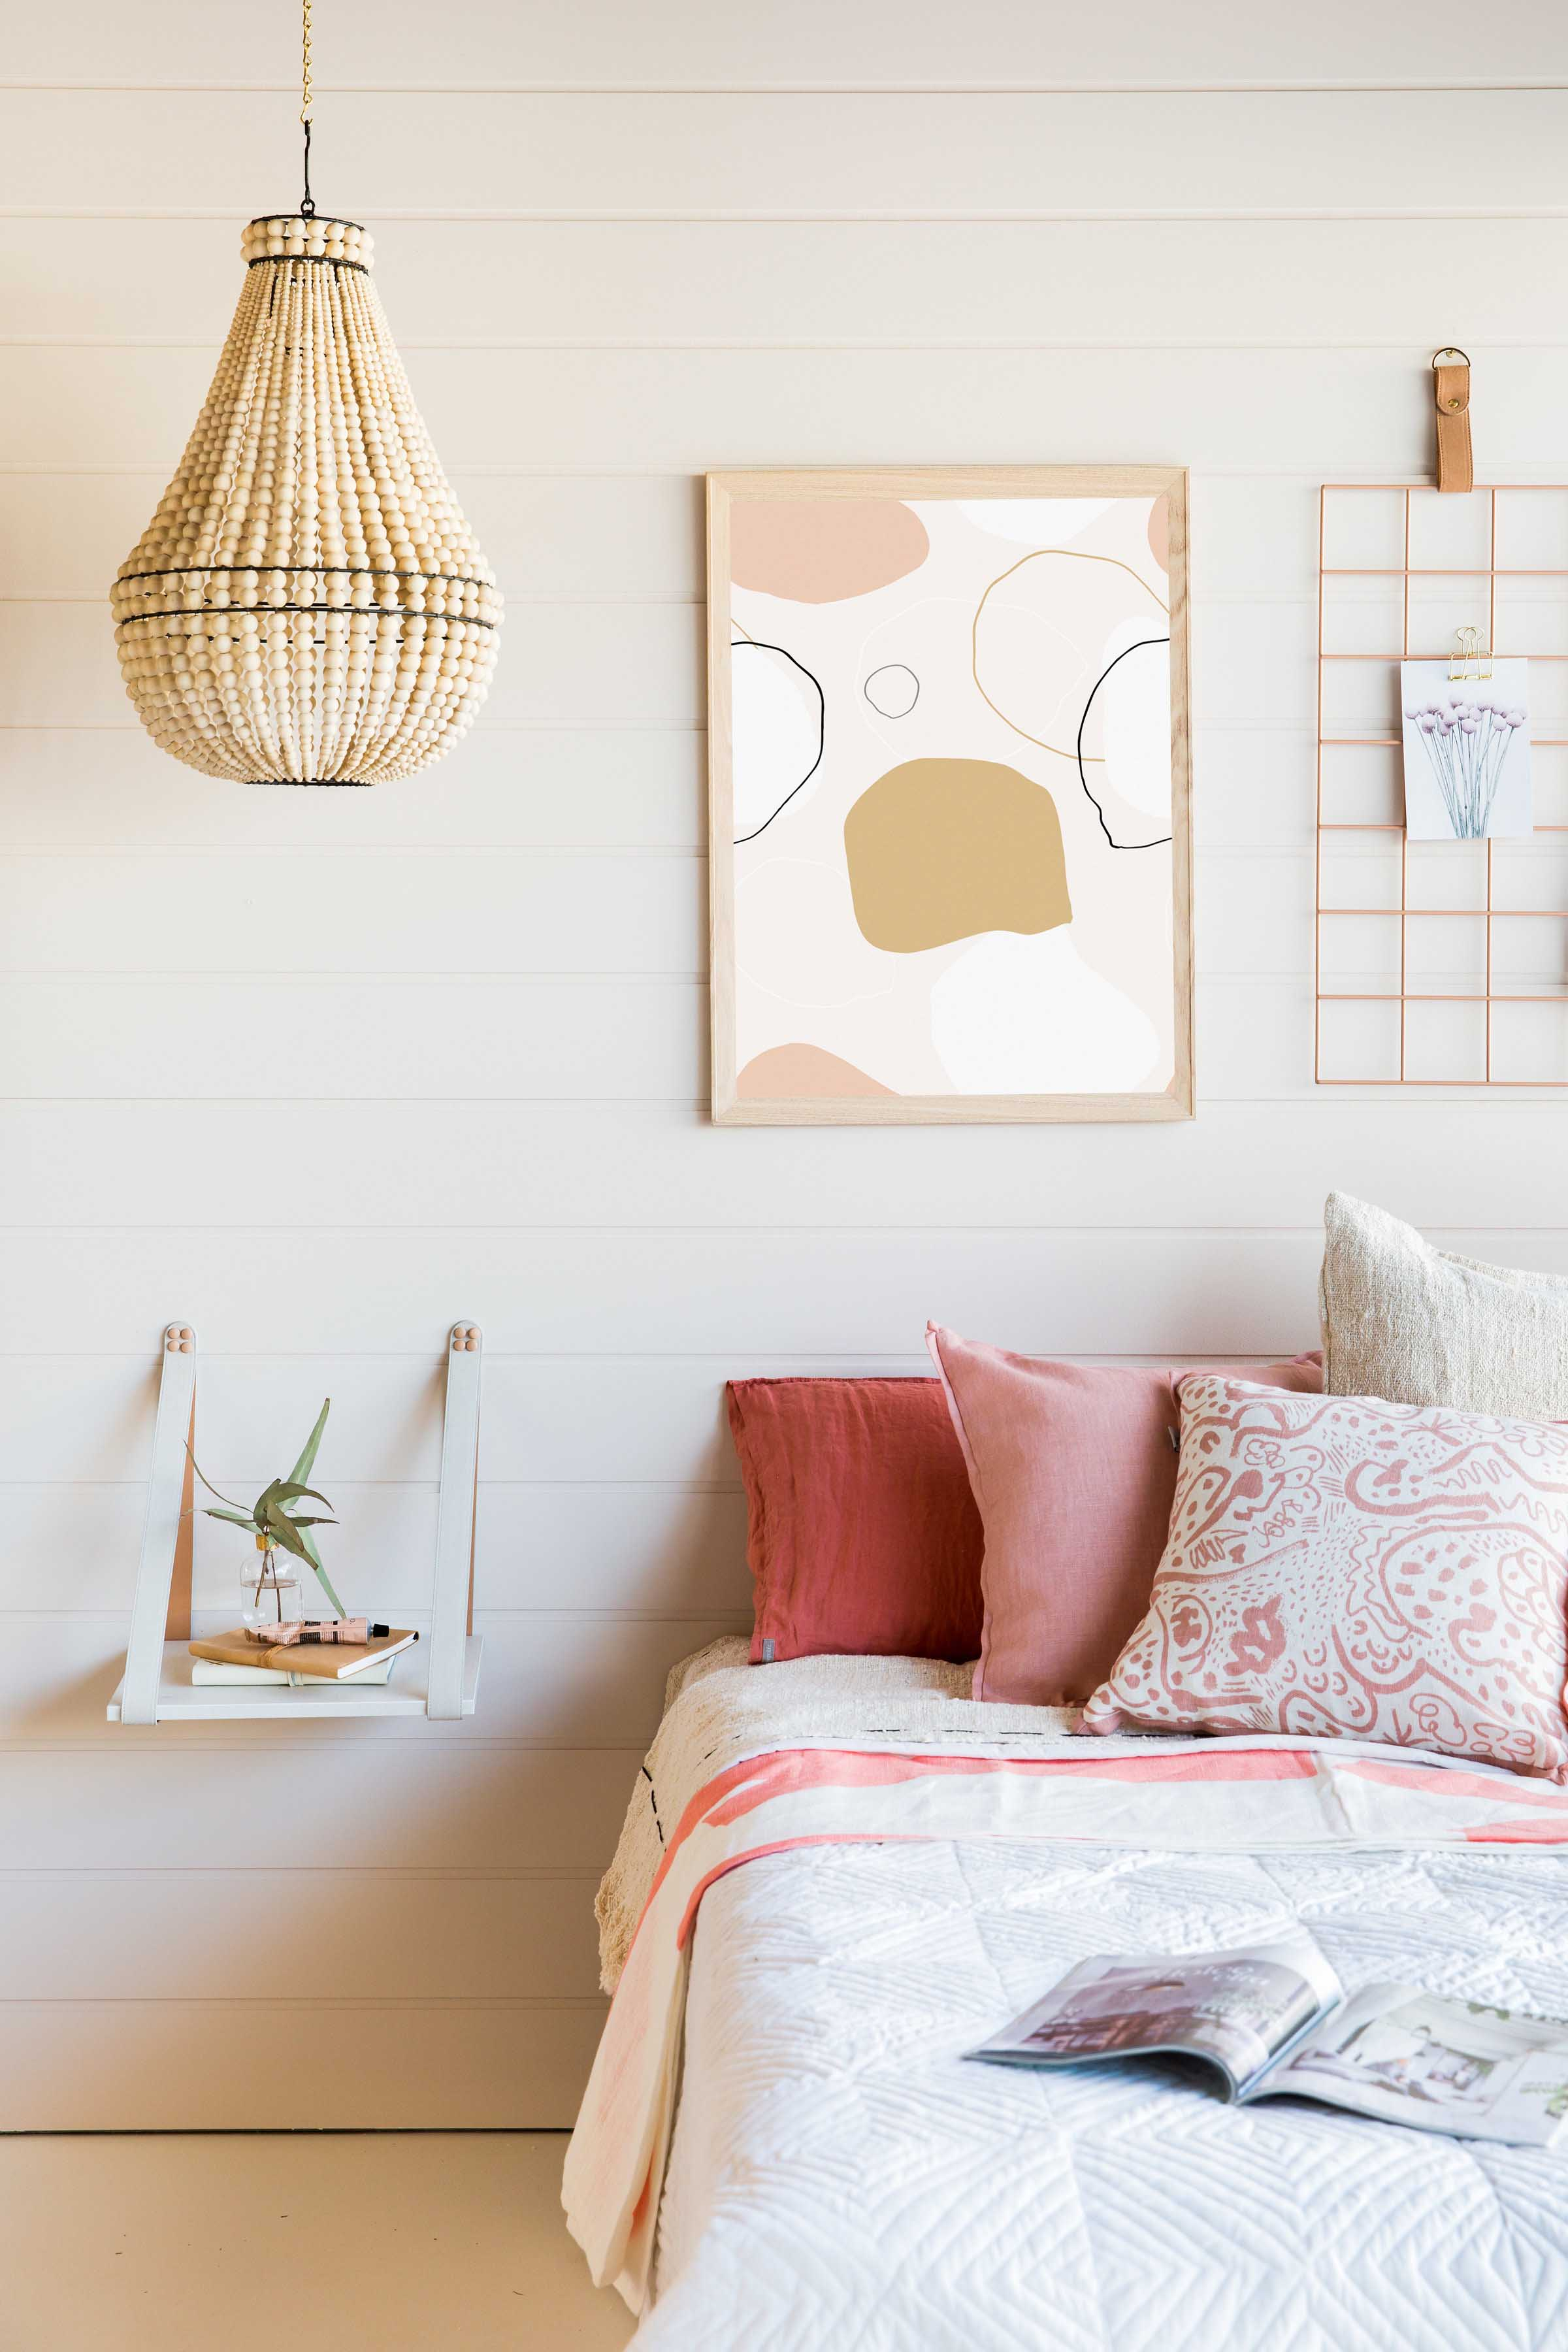 SUNDANCE - One of the prints available on the H & G Designs website.  Sundance is created by Sunshine Coast's Cass Deller, and is the perfect mix of muted tones and lines.